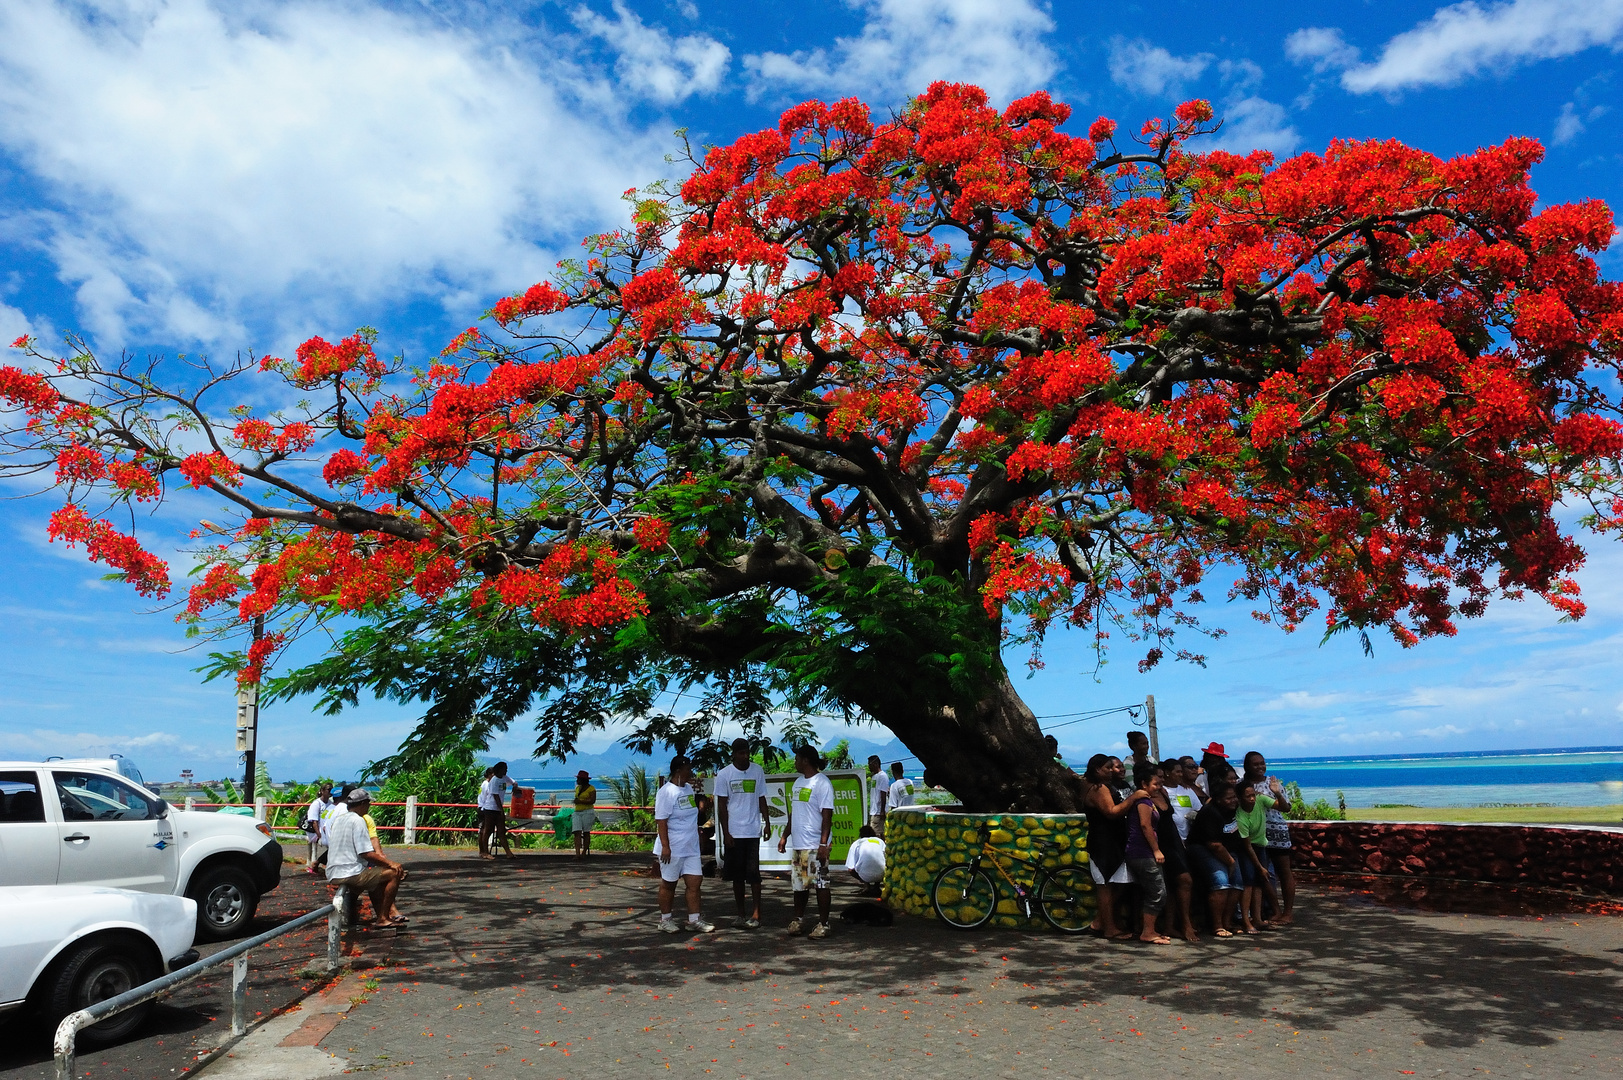 le flamboyant de faaa delonix regia photo et image arbres tahiti nature images fotocommunity. Black Bedroom Furniture Sets. Home Design Ideas